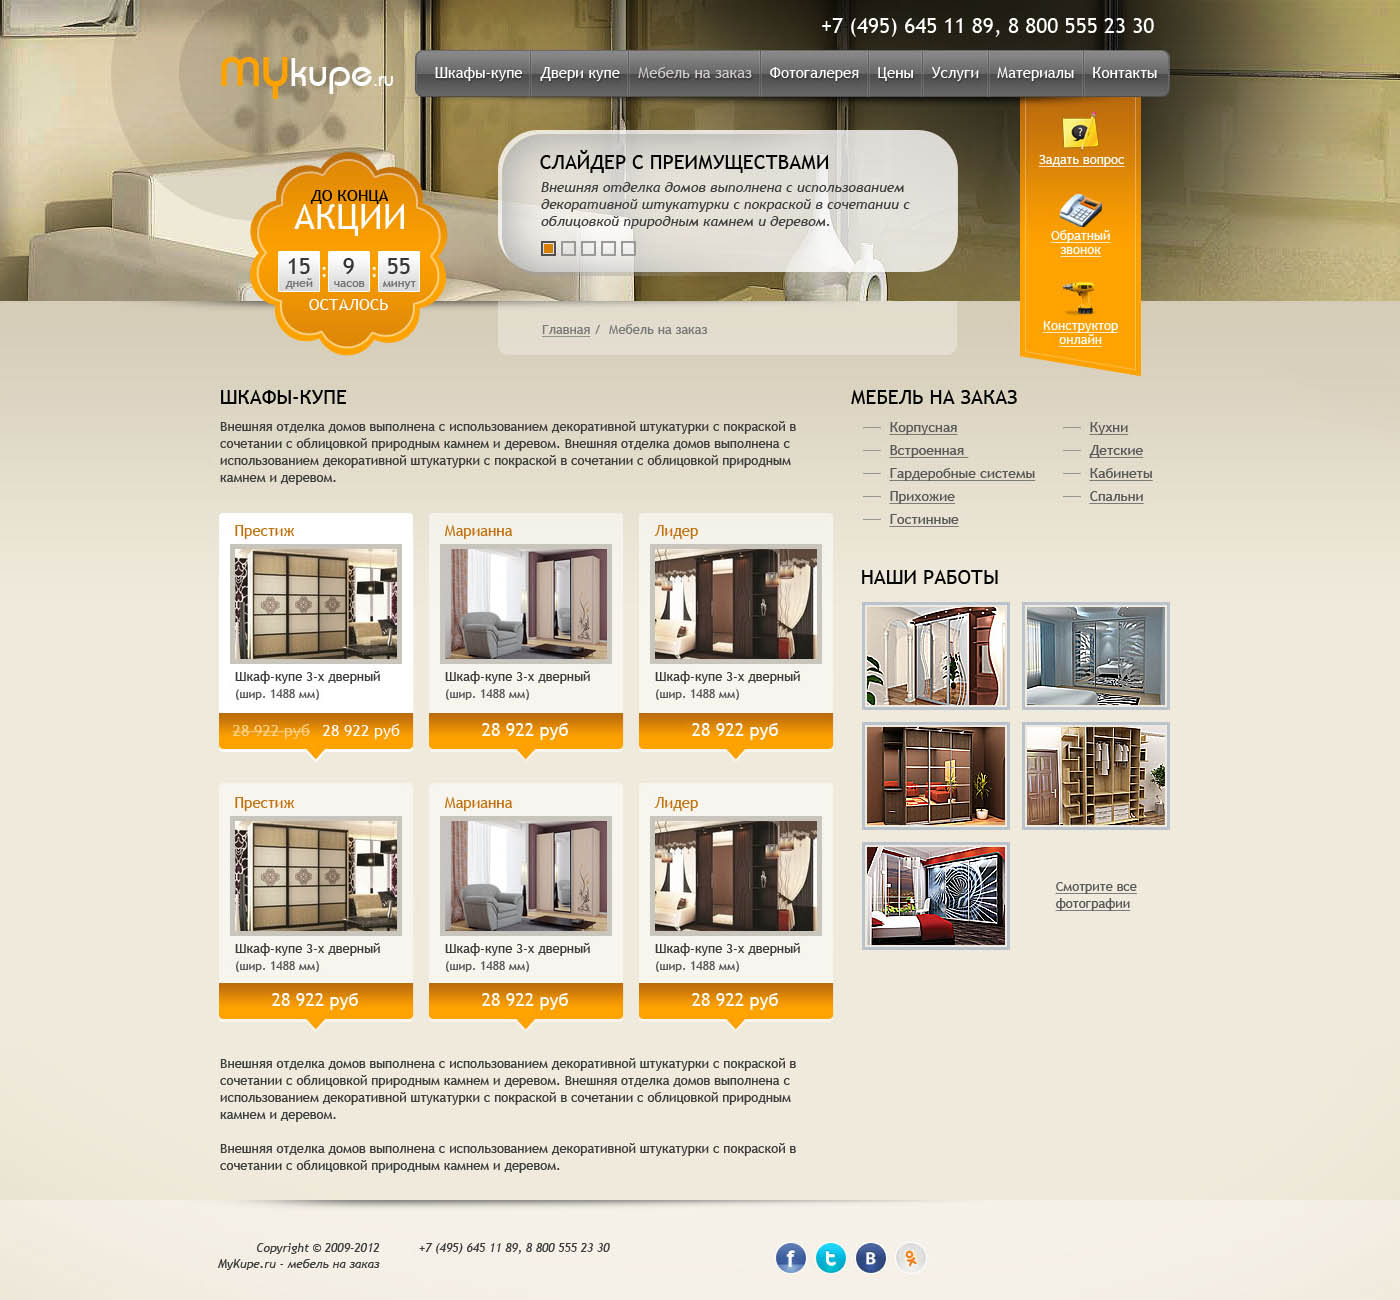 Website of sliding door wardrobe producer